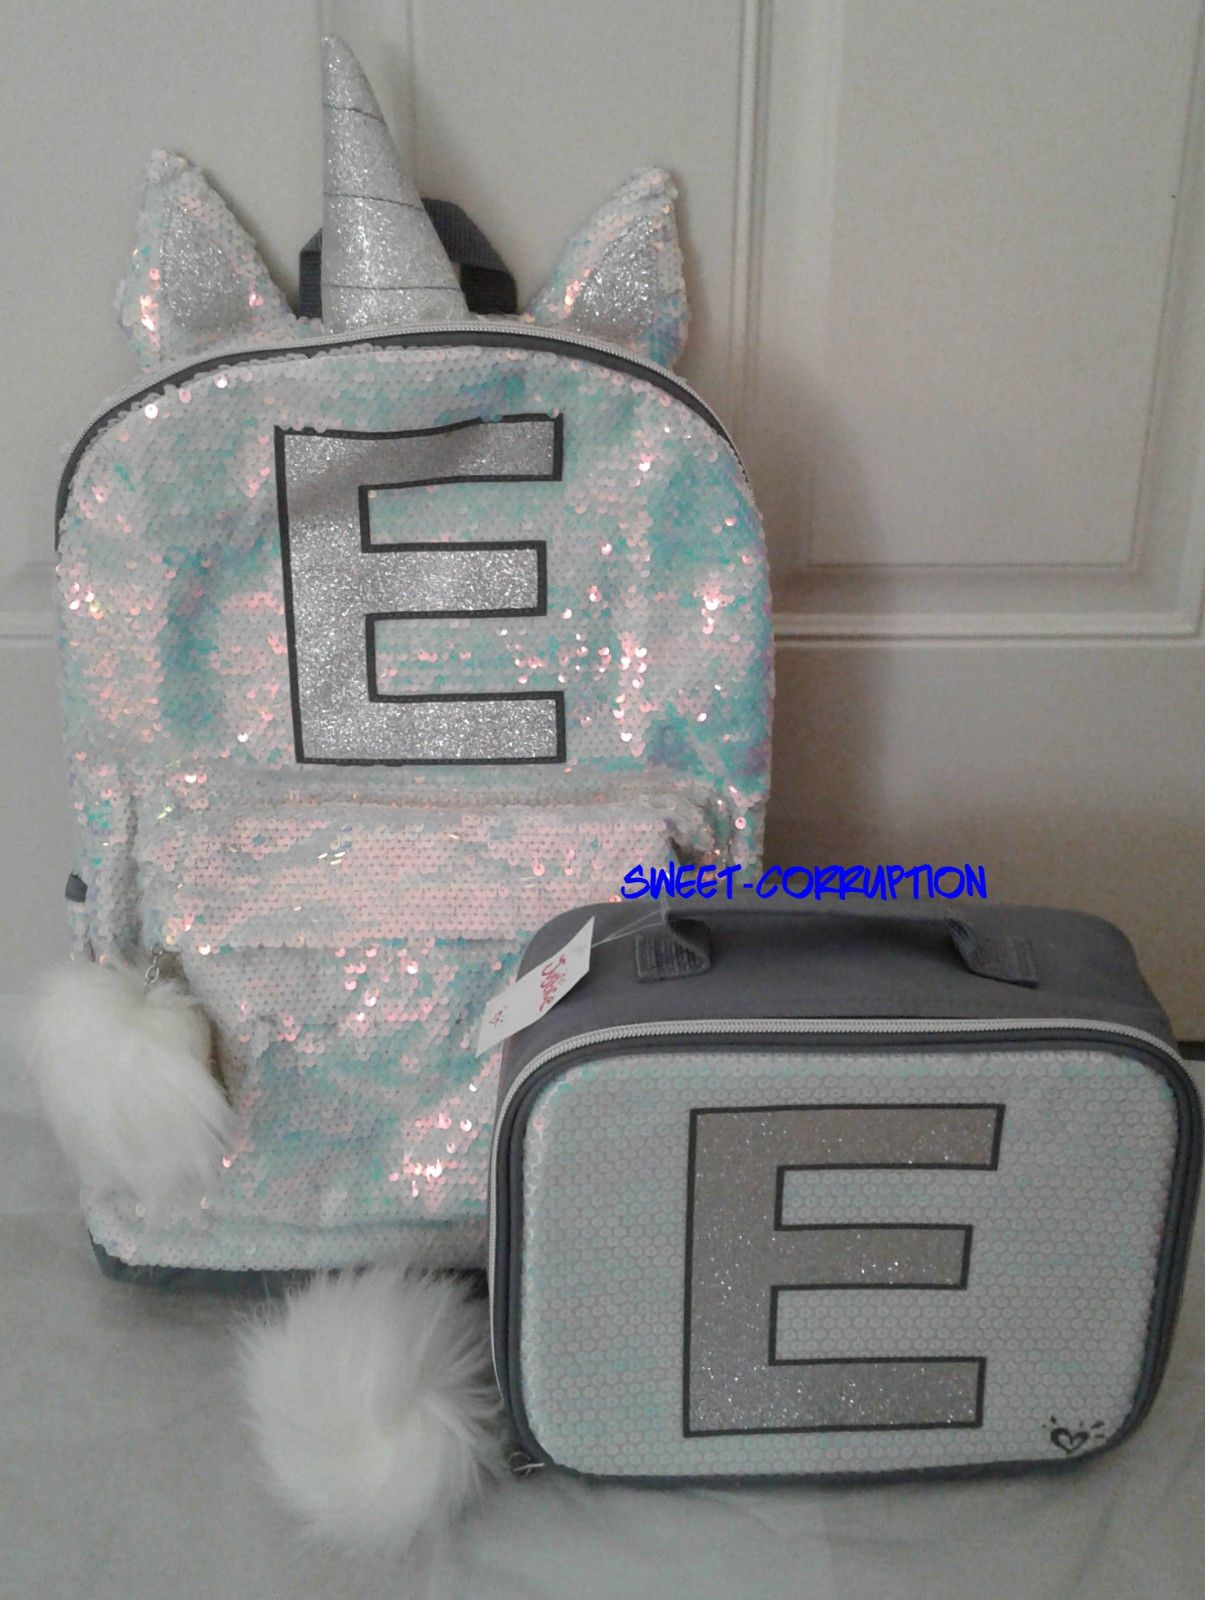 d9376f270ce5 Backpacks 57917  Justice Unicorn E Initial Letter Backpack Lunch Tote Box 2  Pc Set Girls -  BUY IT NOW ONLY   98.98 on eBay!